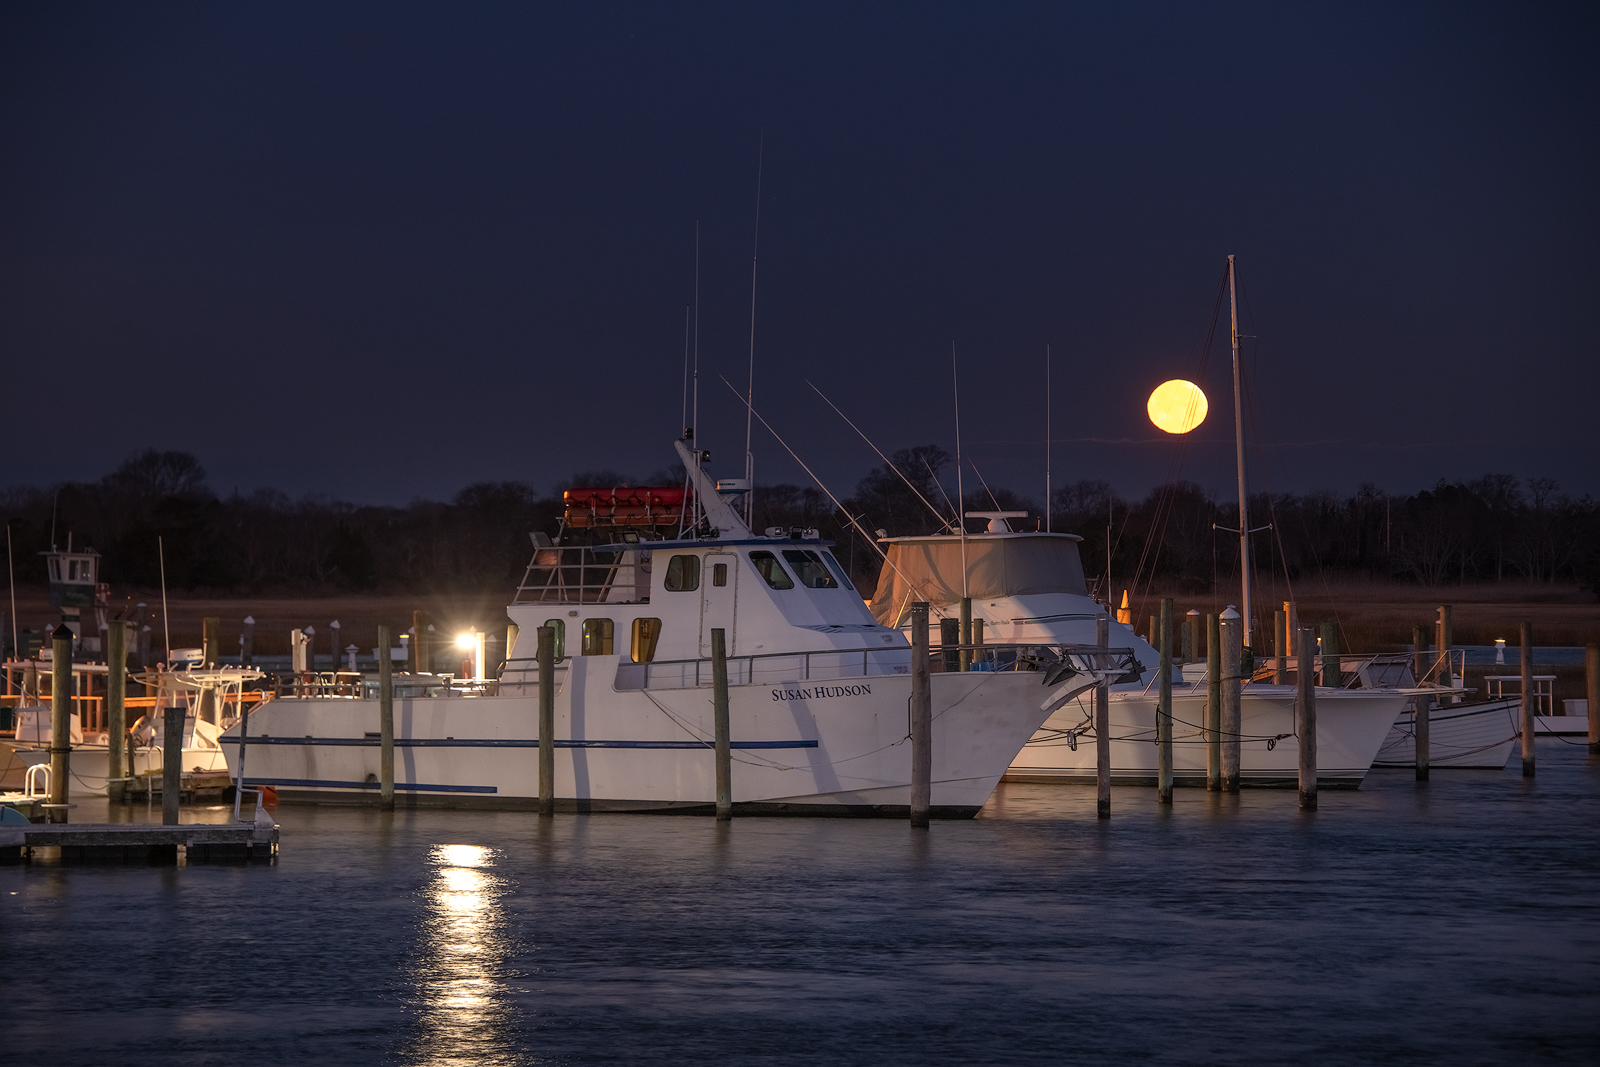 Fishing boats at dock in the harbor with the Harvest Moon setting in the east.